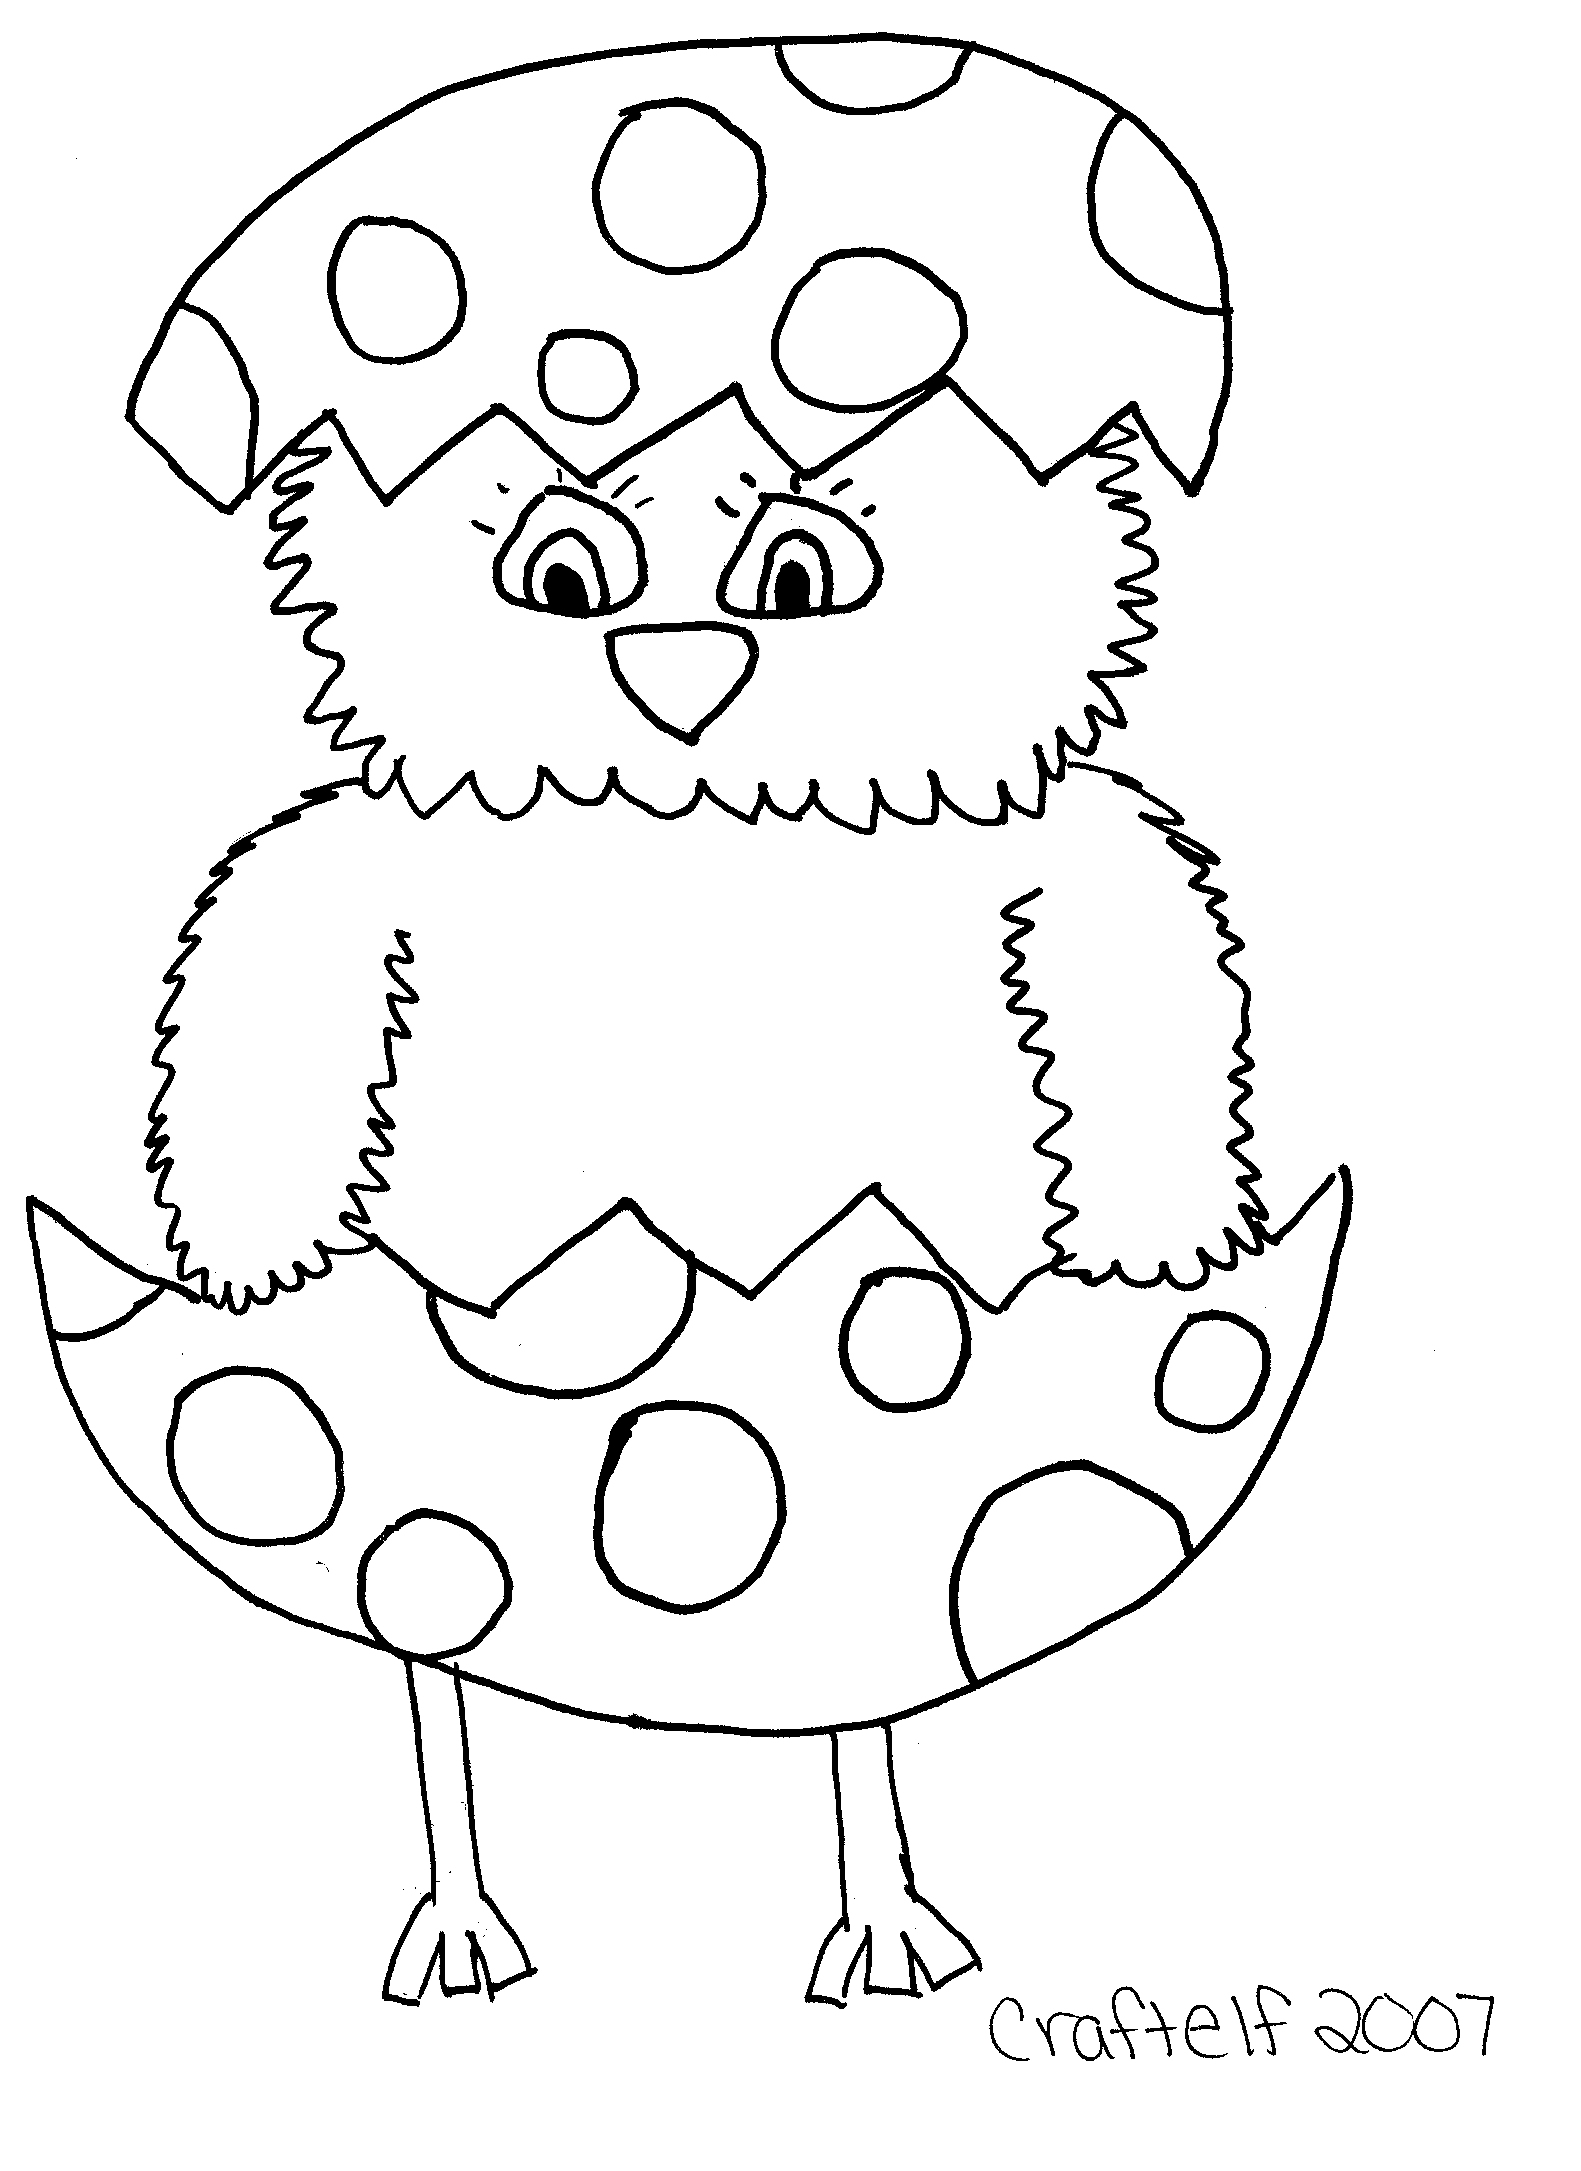 Coloring Pages : Religeous Easter Coloring Pages Printable Free For - Easter Color Pages Free Printable